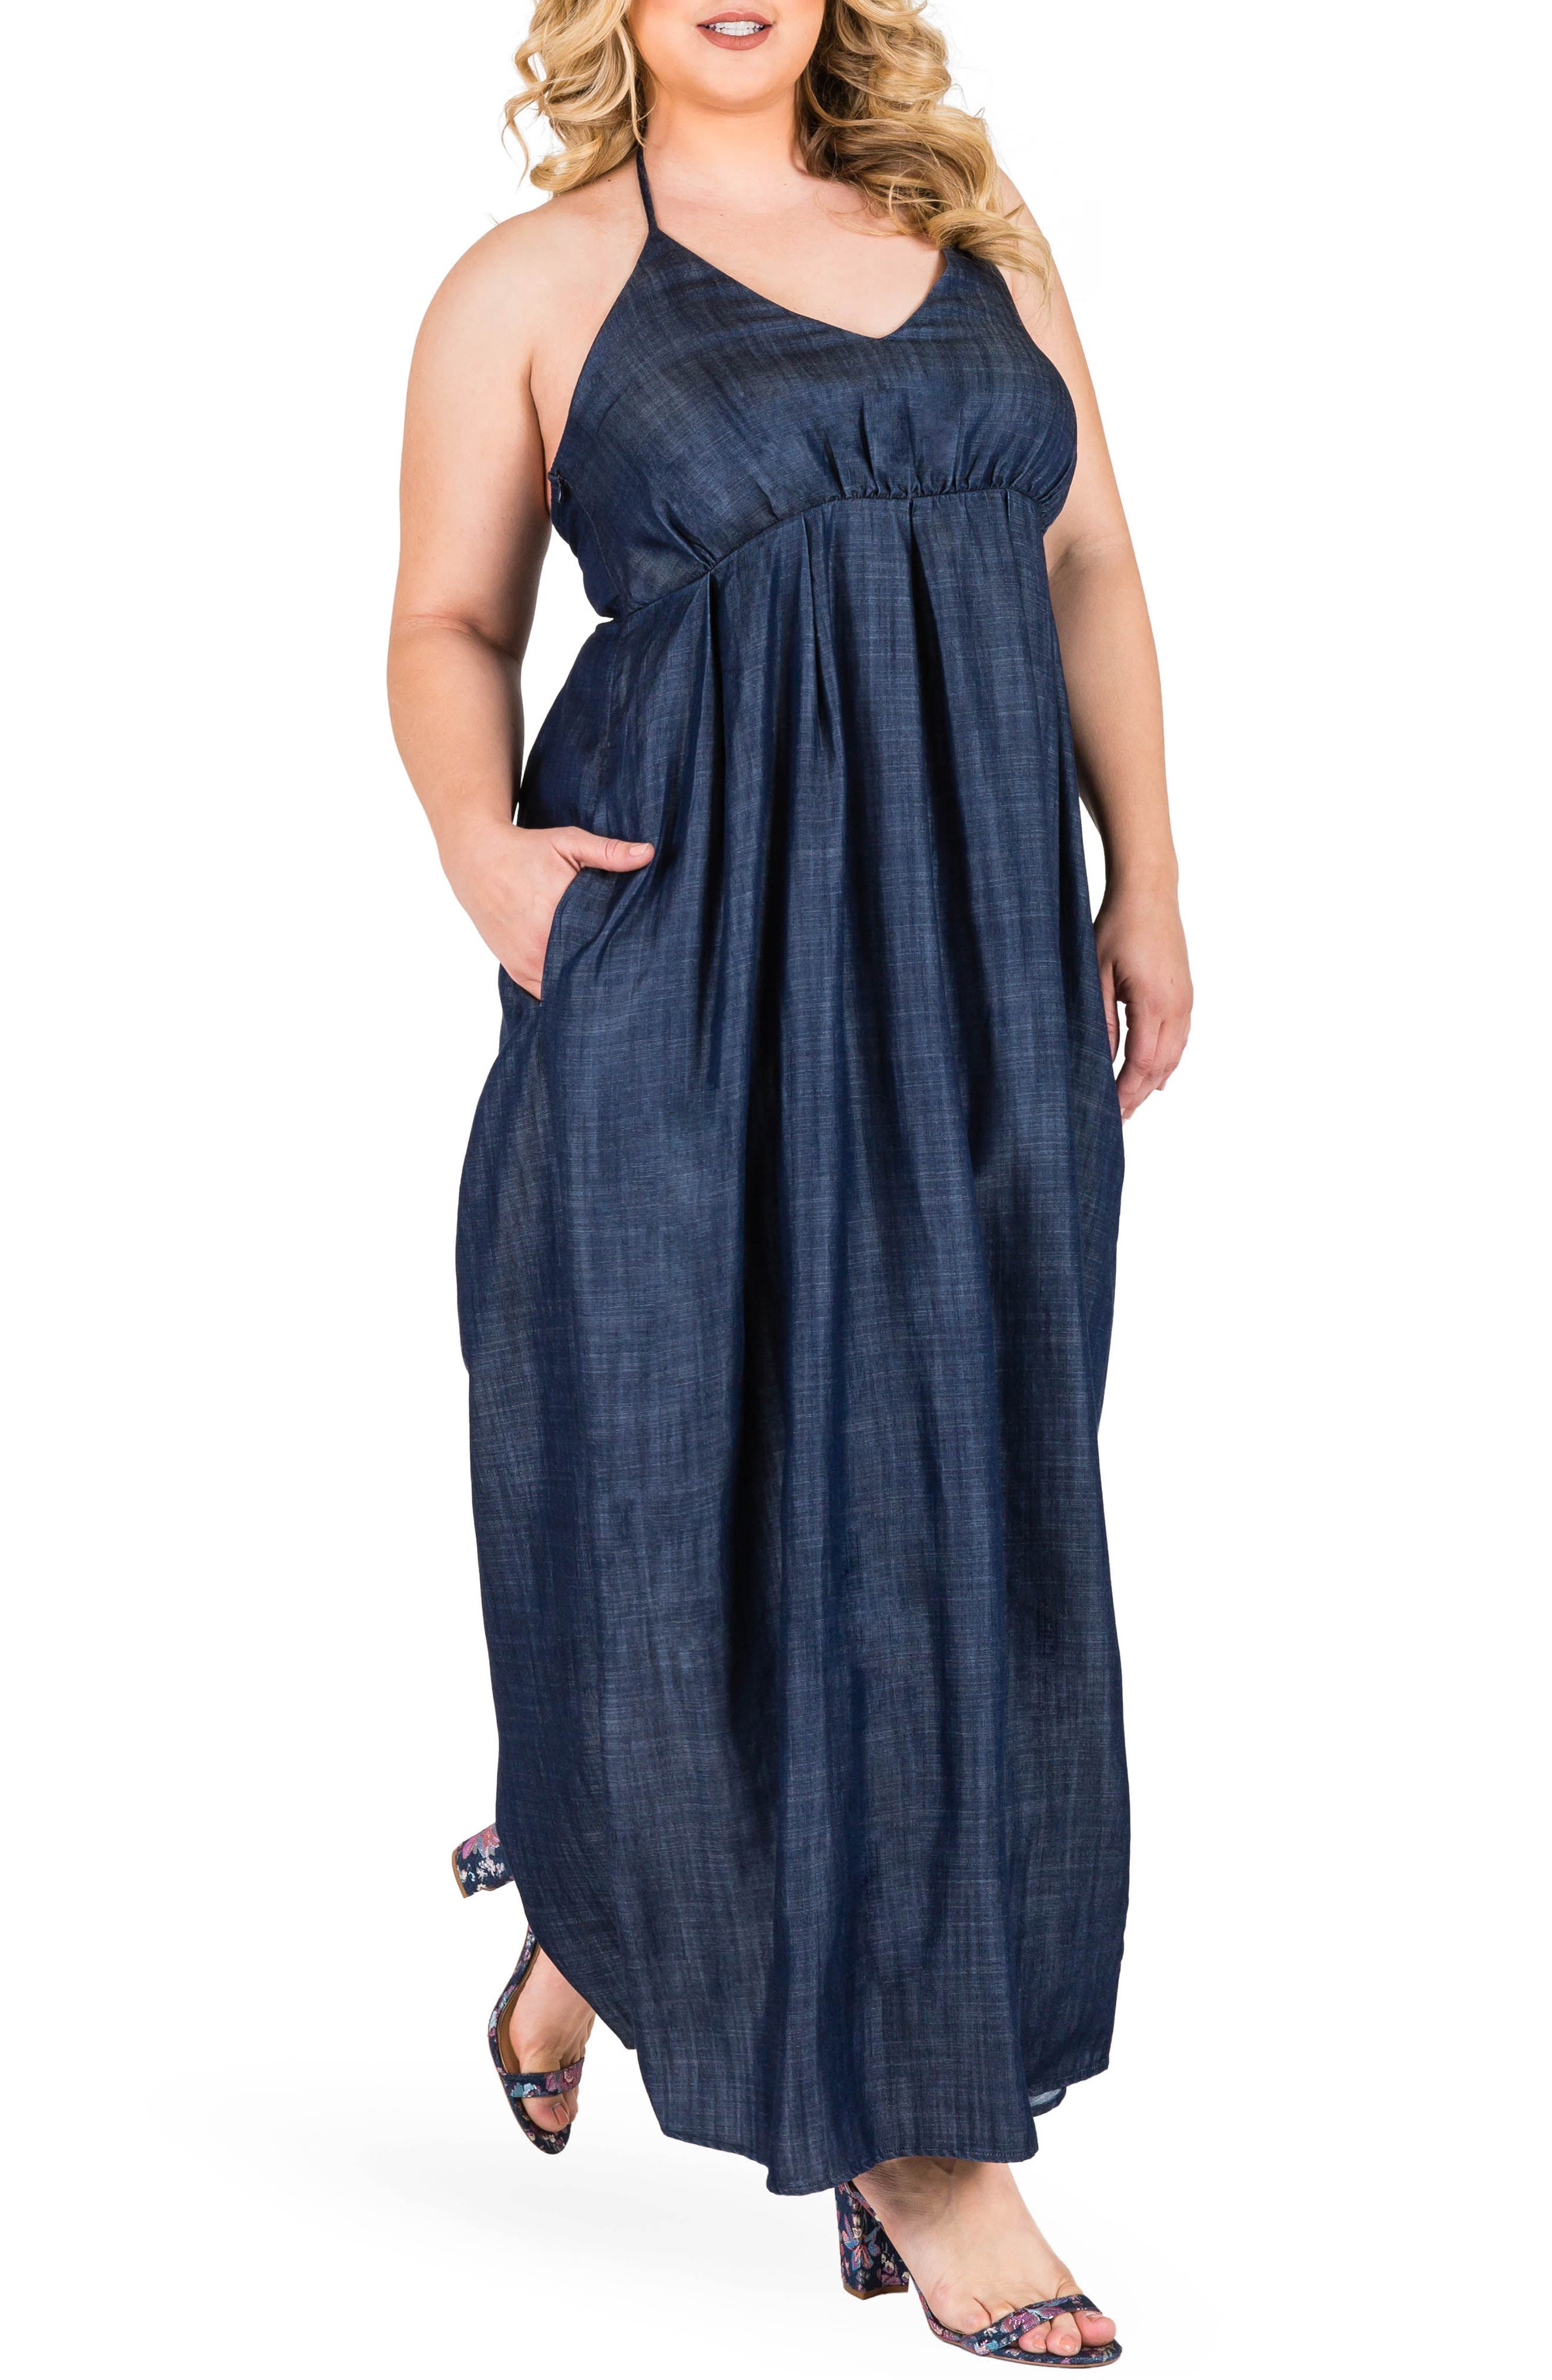 STANDARDS & PRACTICES,                             Maui Maxi Chambray Halter Dress,                             Main thumbnail 1, color,                             DARK BLUE